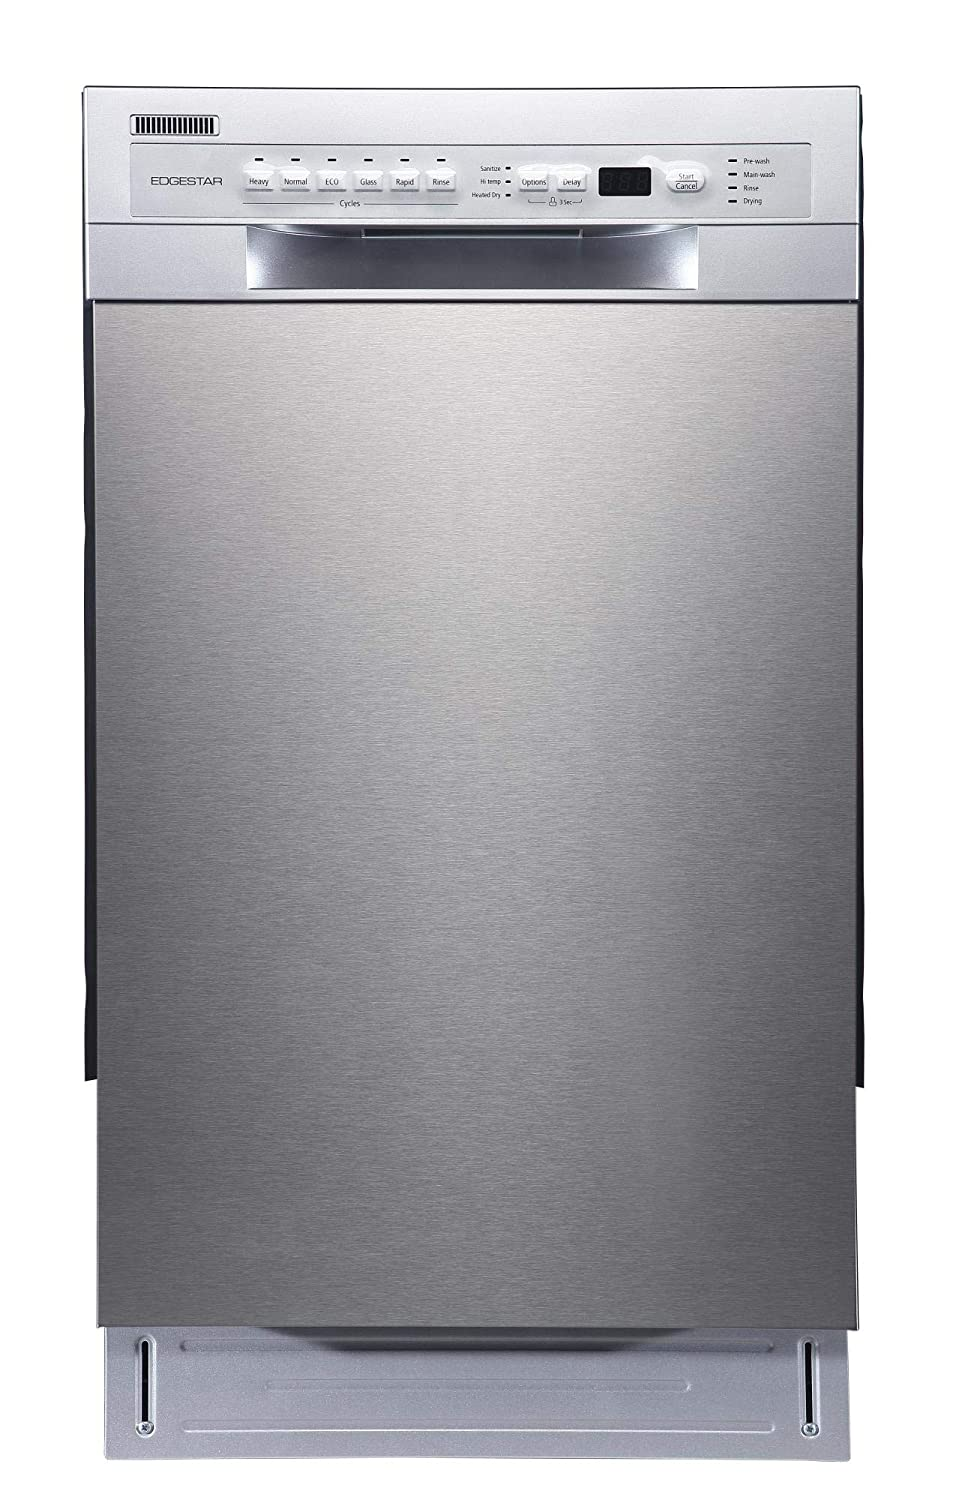 10 BEST Bosch 18 Inch Dishwashers of March 2020 3